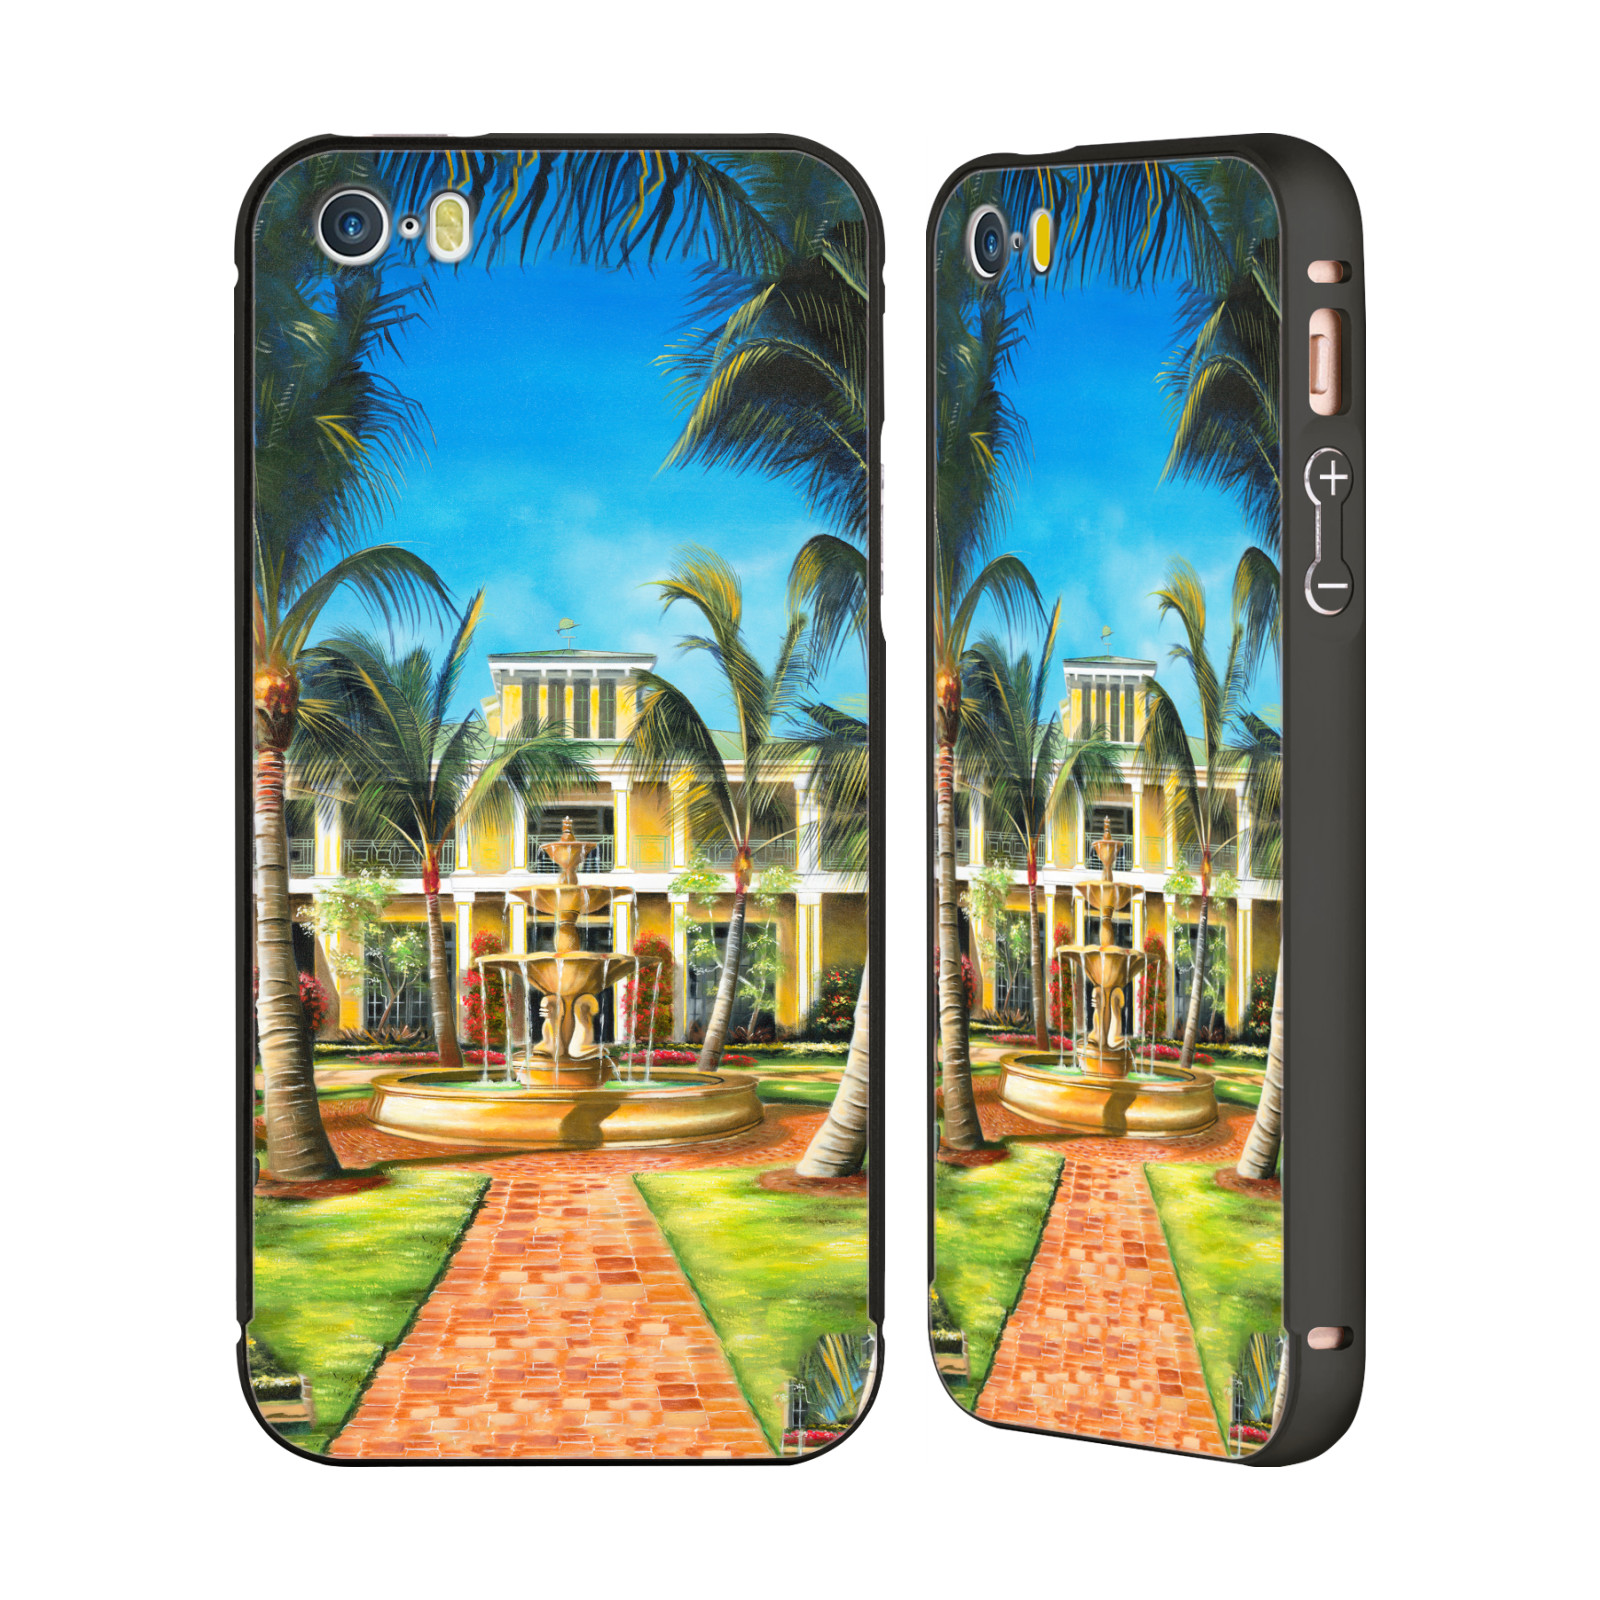 OFFICIAL-GENO-PEOPLES-ART-HOLIDAY-BLACK-SLIDER-CASE-FOR-APPLE-iPHONE-PHONES